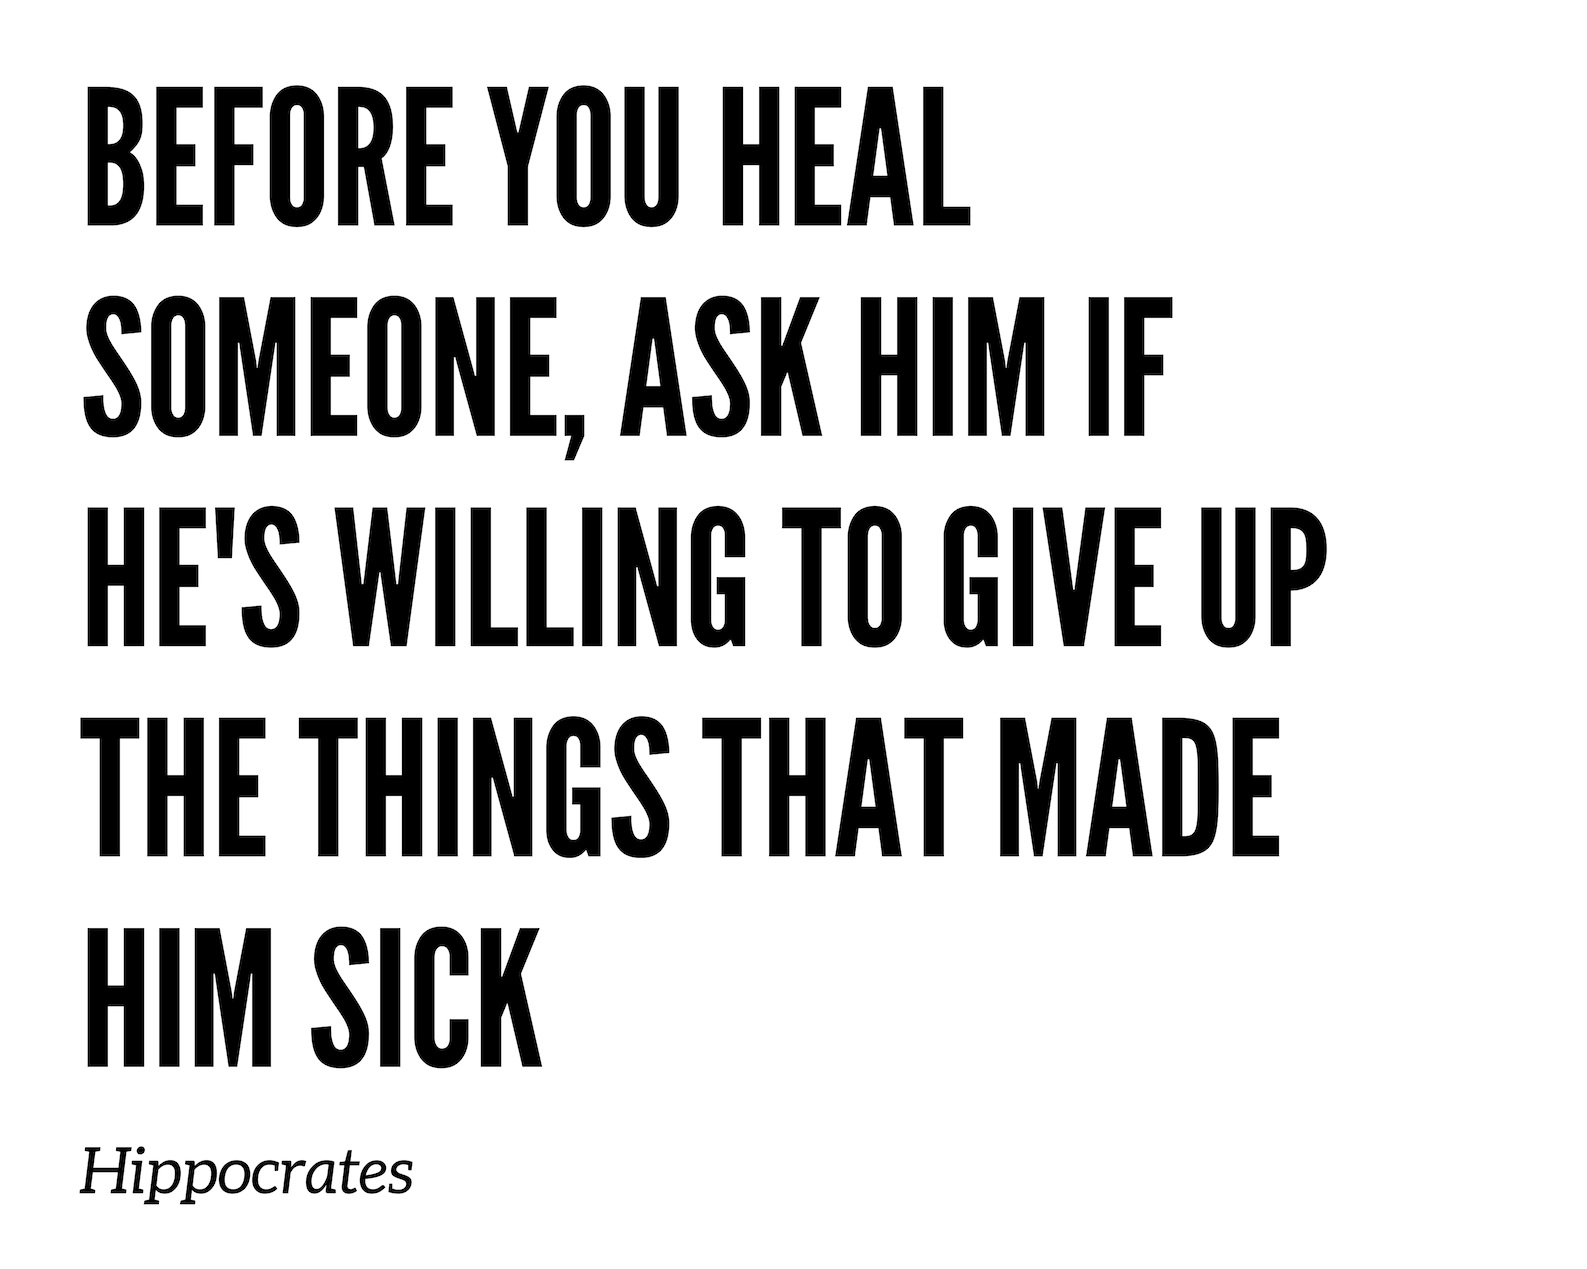 before+you+heal+someone%2C+ask+him+if+they%27re+willing+to+give+up+the+thing+that+made+him+sick+%281%29.jpg